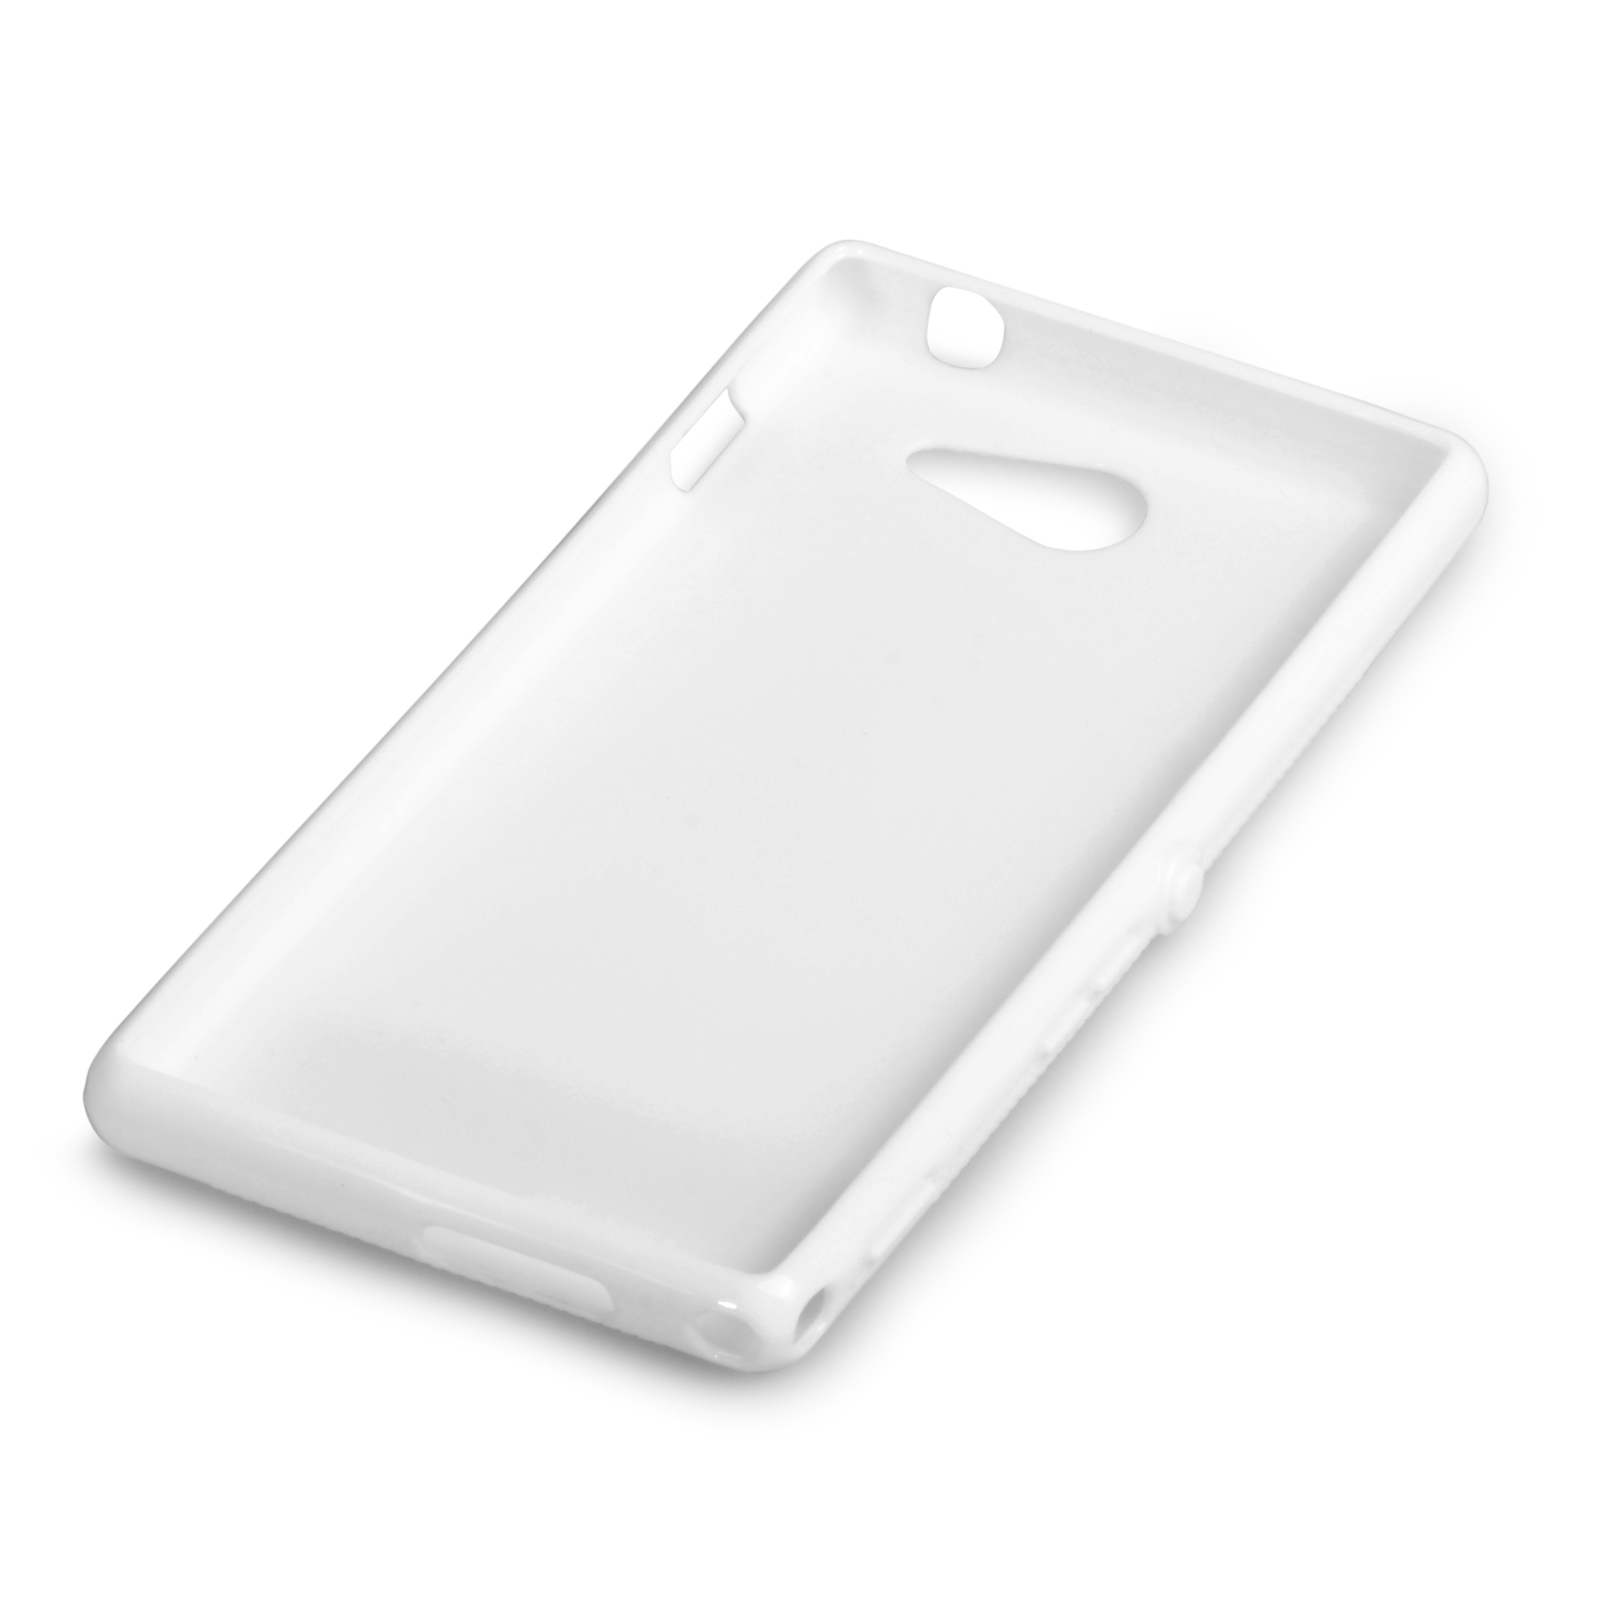 YouSave Accessories Sony Xperia M2 Silicone Gel X-Line Case - White